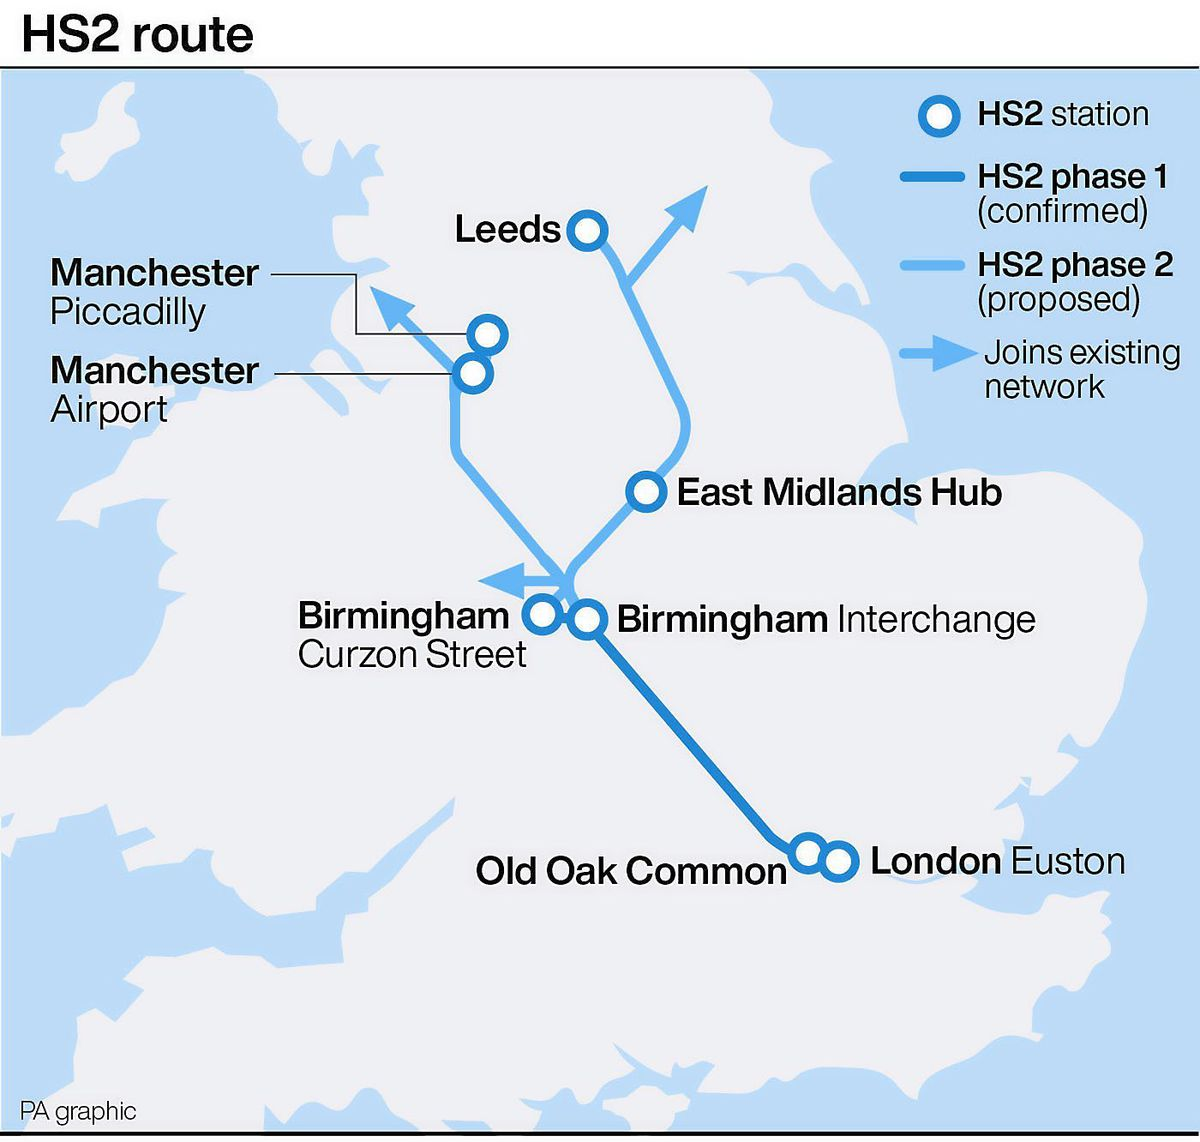 Work will get started in earnest on the HS2 route following the Government's committment to the scheme